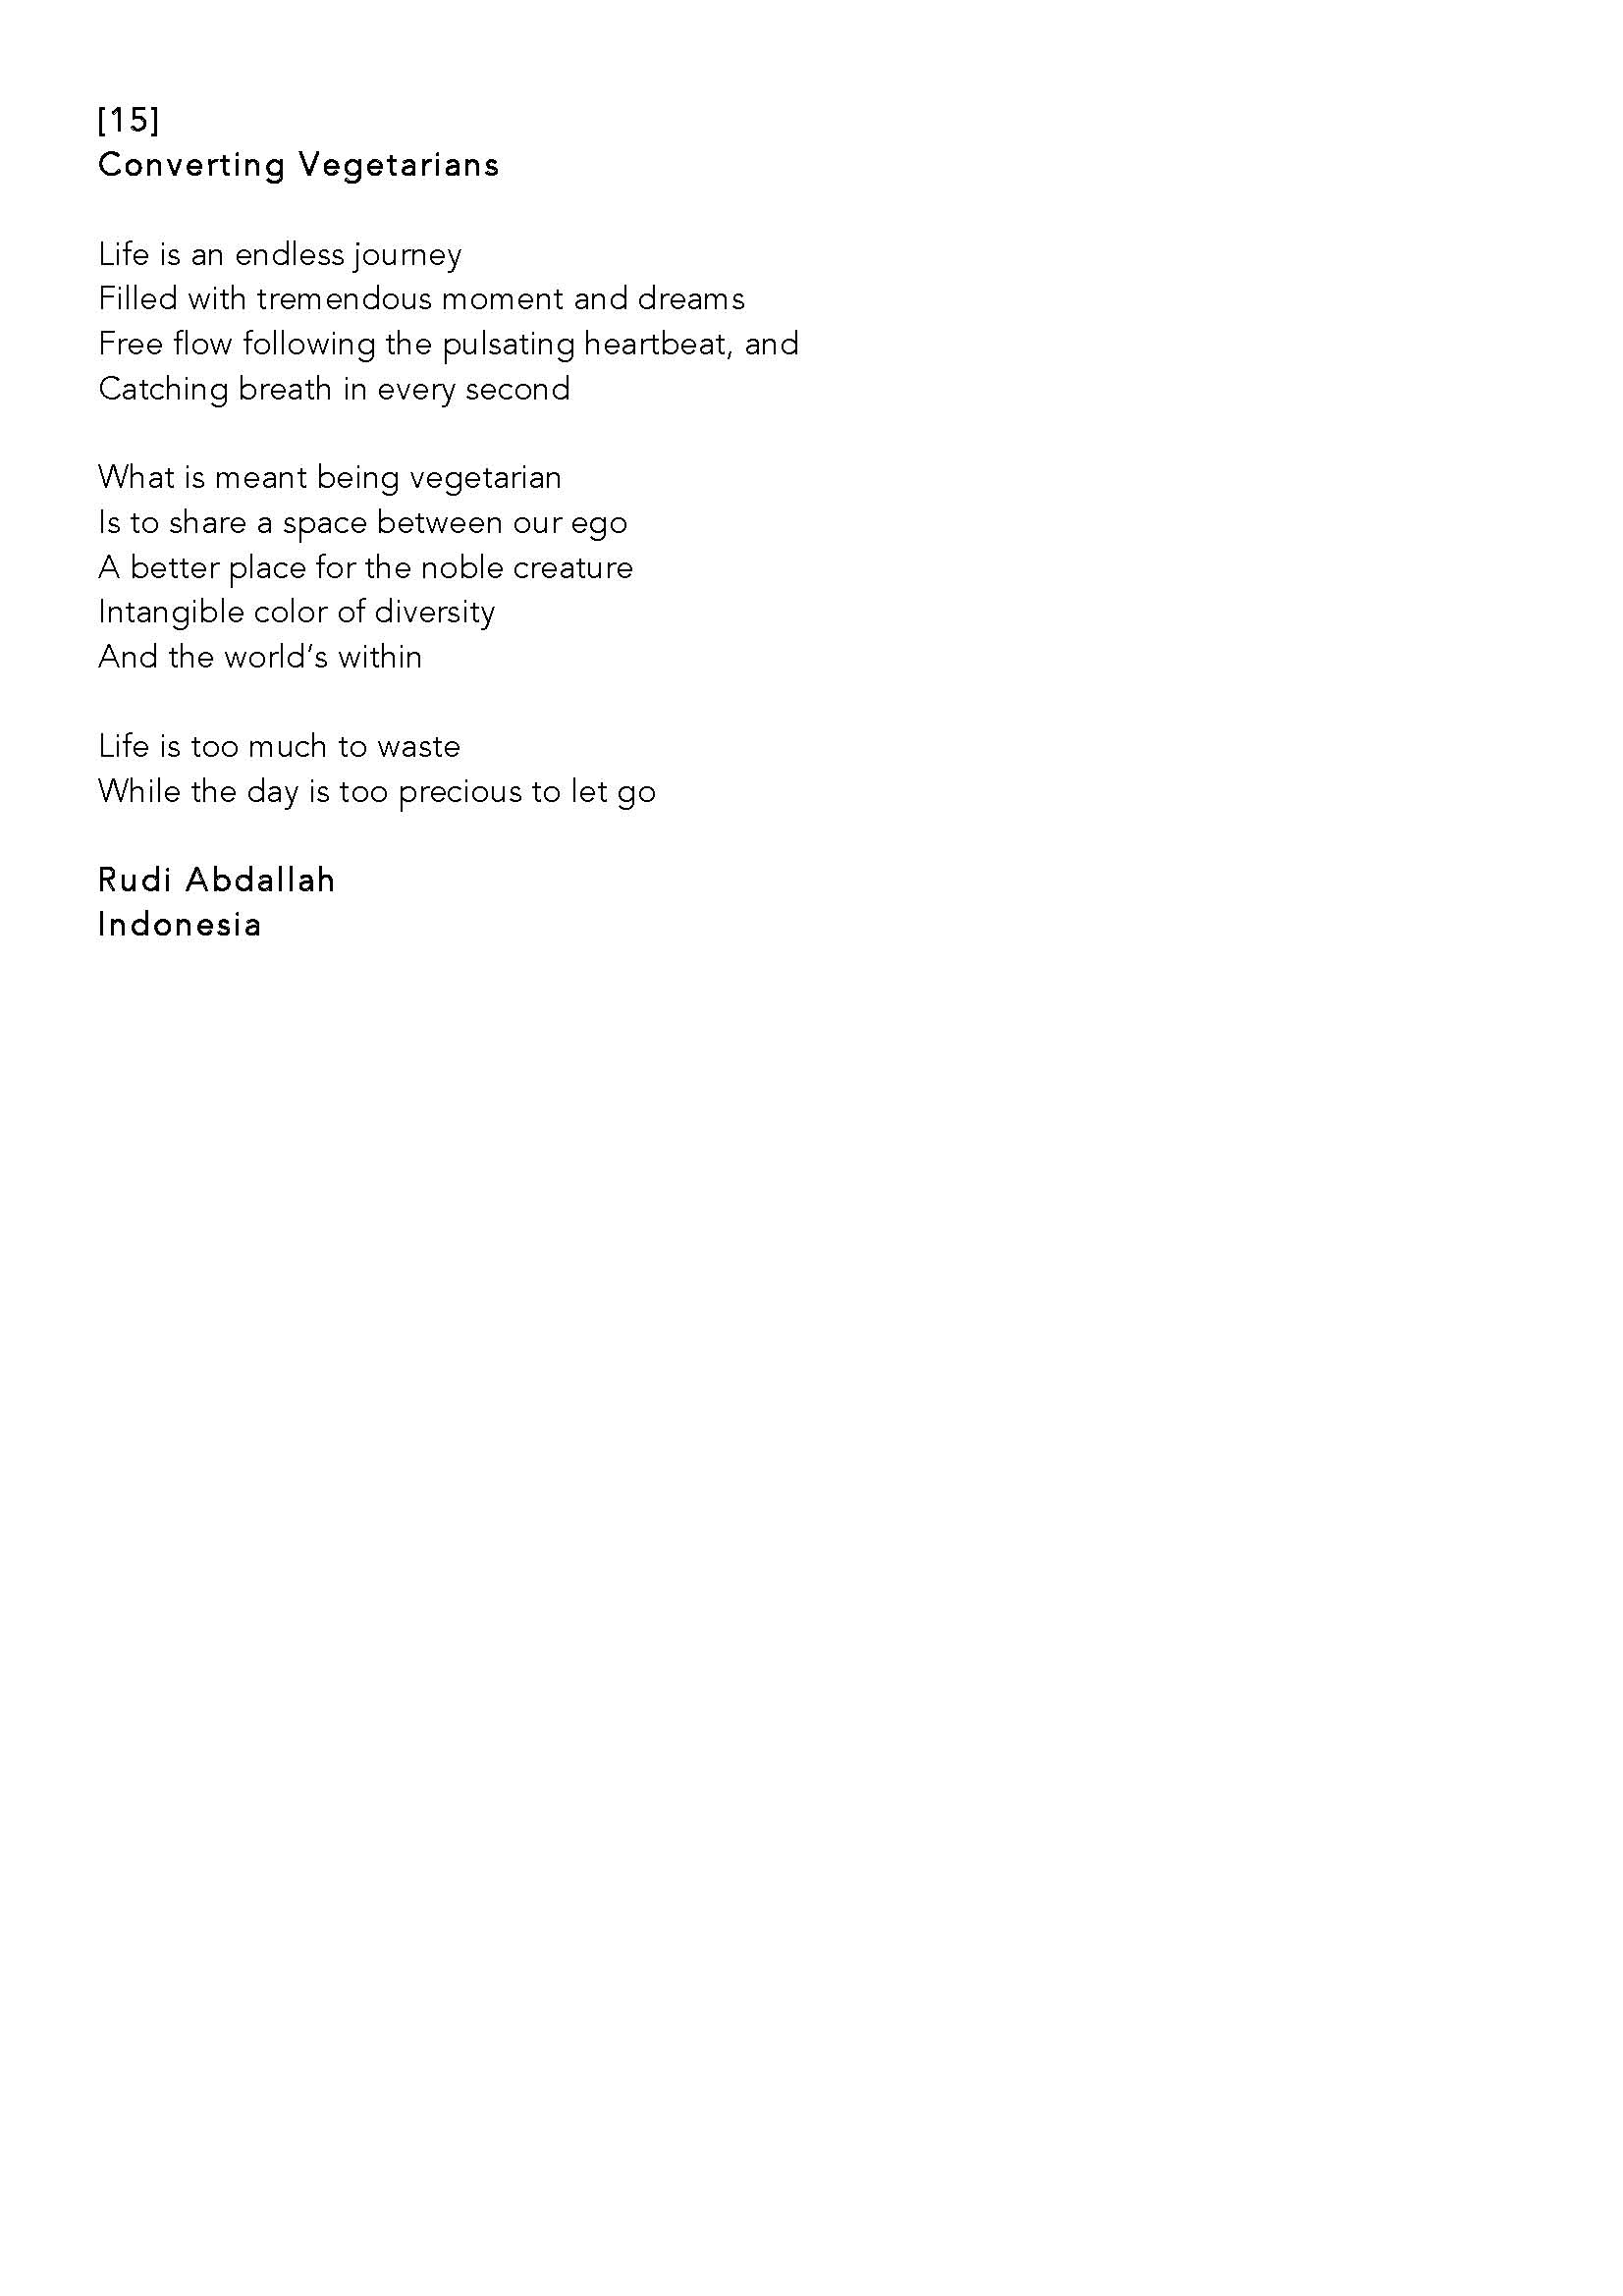 Poetry Collection - Everyone can Poetry _ For 13 Aug 2014--R1_Page_15.jpg